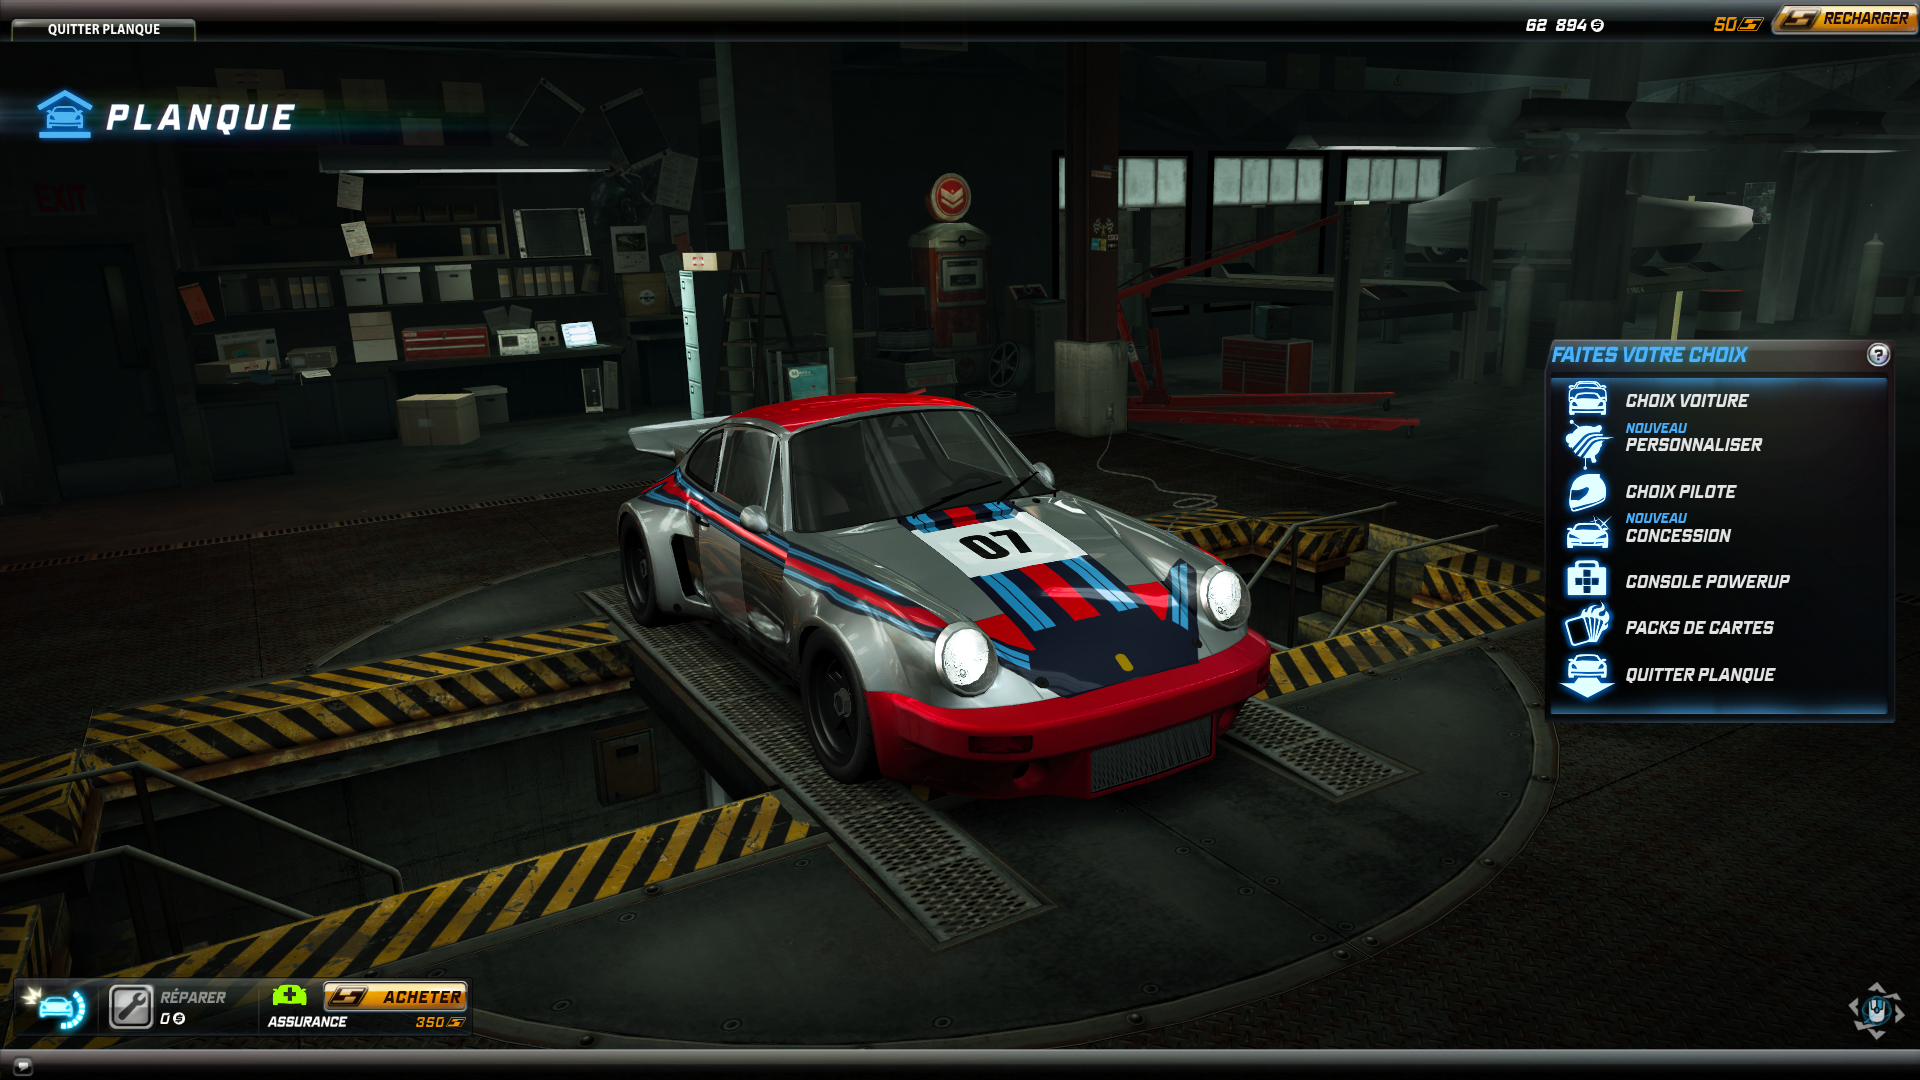 This is my Porsche 911 Carrera RSR 3 0 with Martini livery